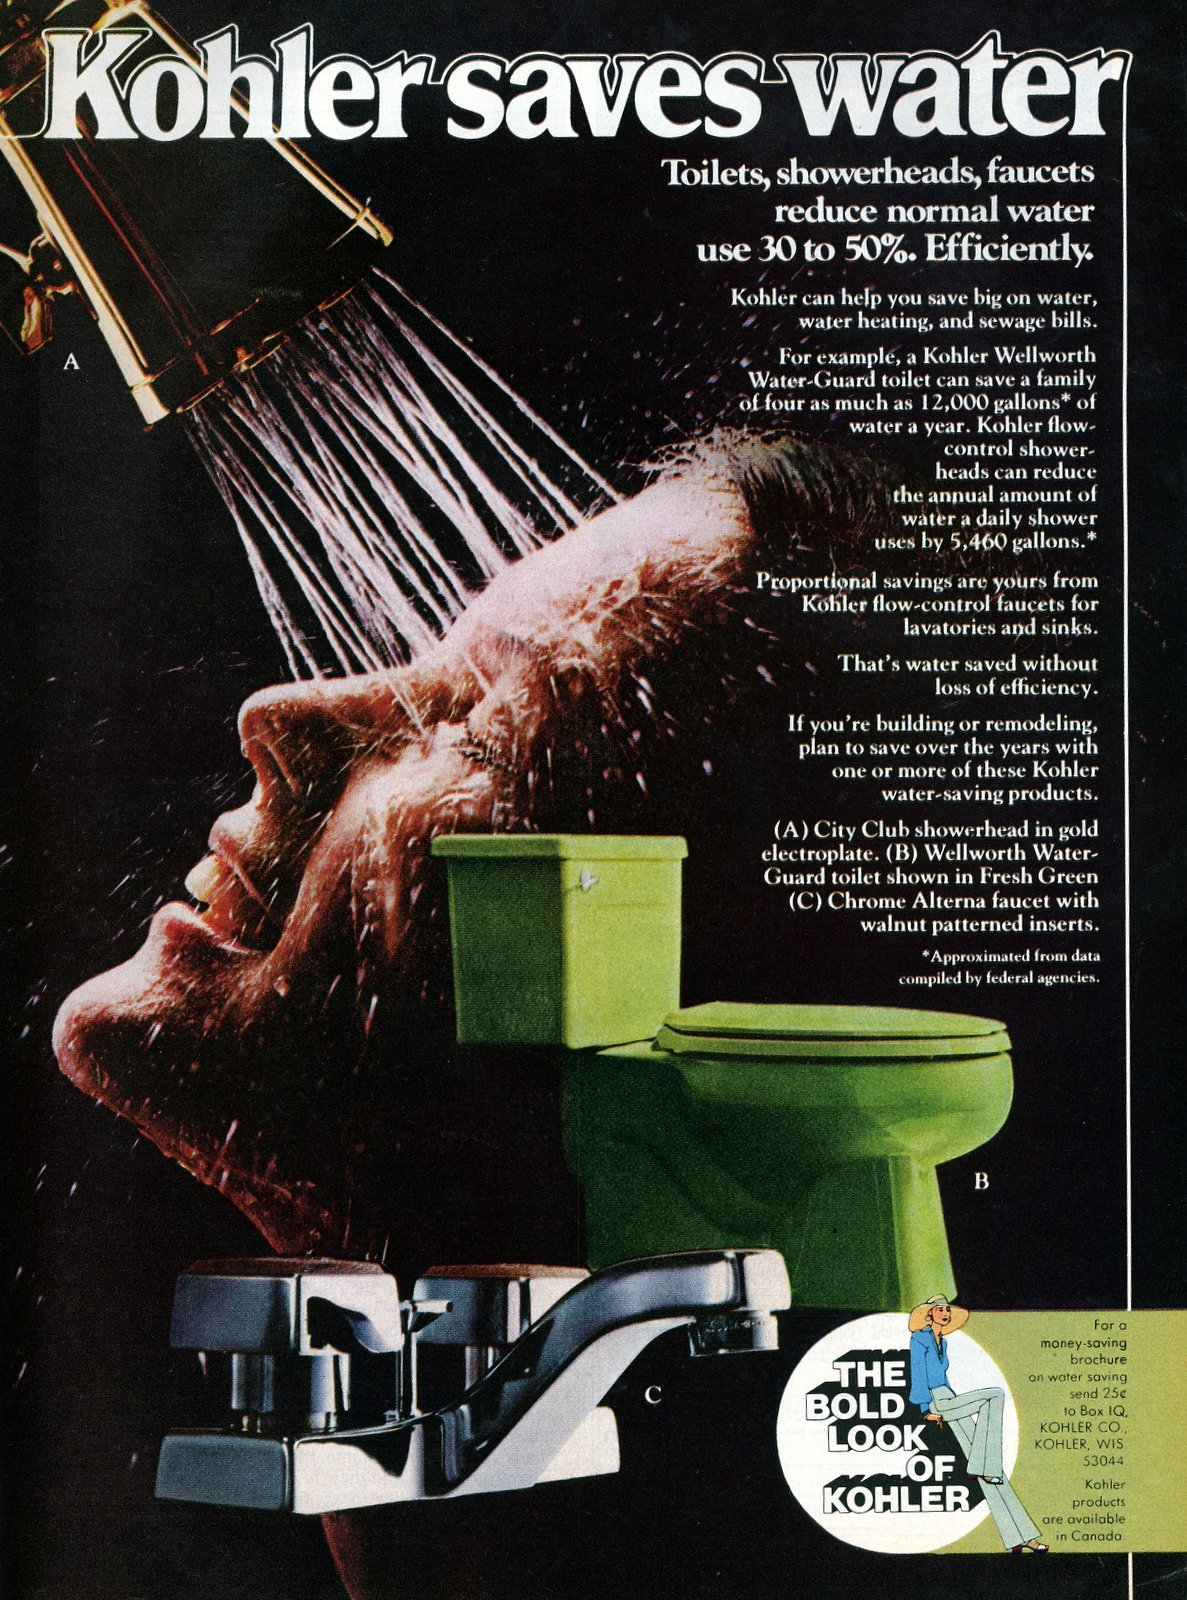 Toilets showerheadsfaucets to save water (1975)